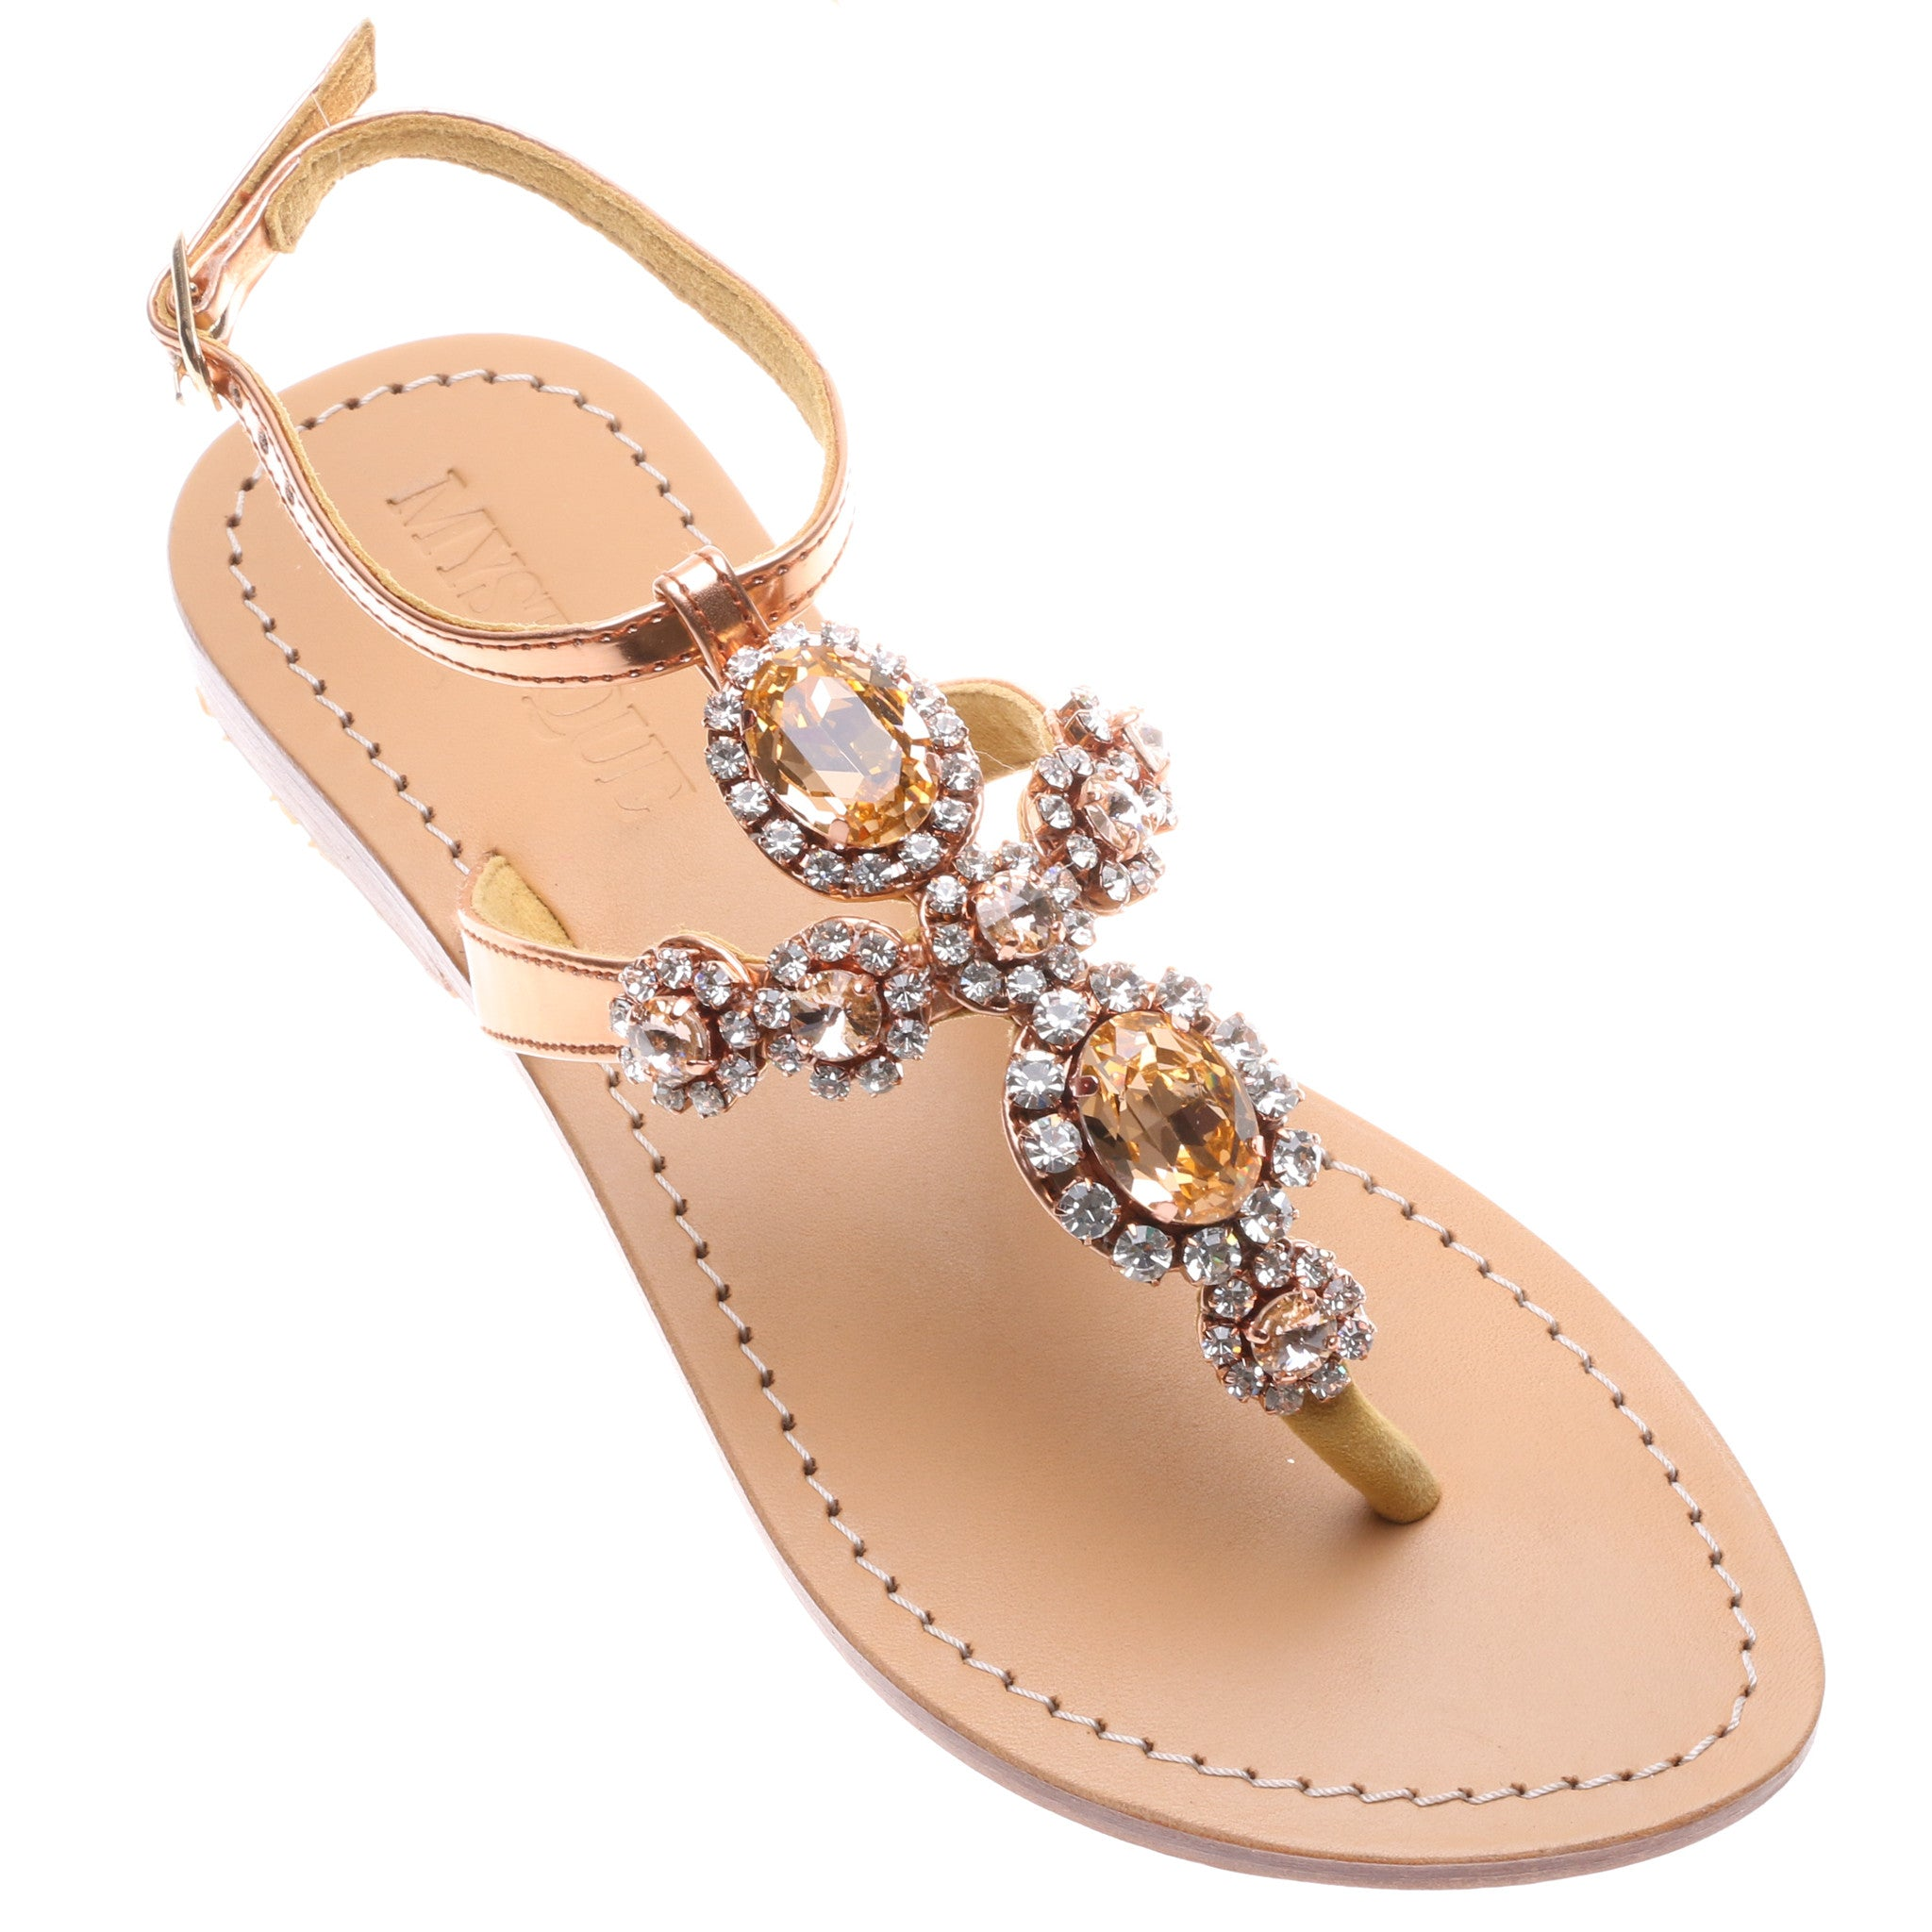 60bad6ee13aebb Jeweled   Embellished Flat Leather Women s Sandals